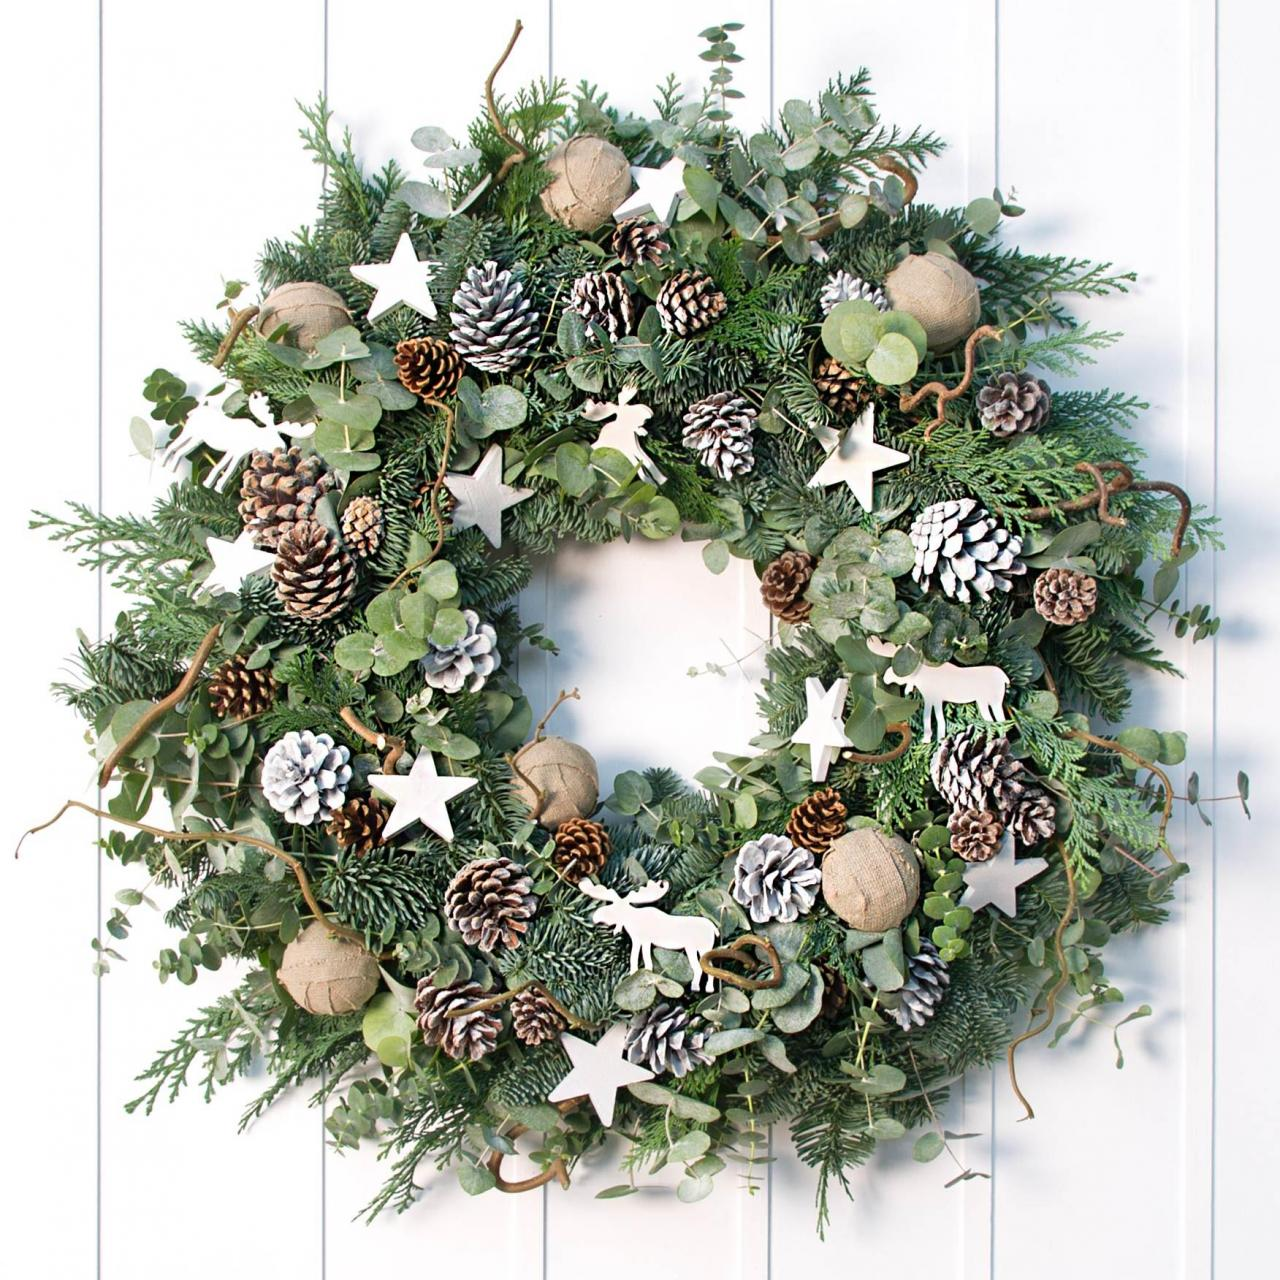 philippa-craddock-nordic-wreath